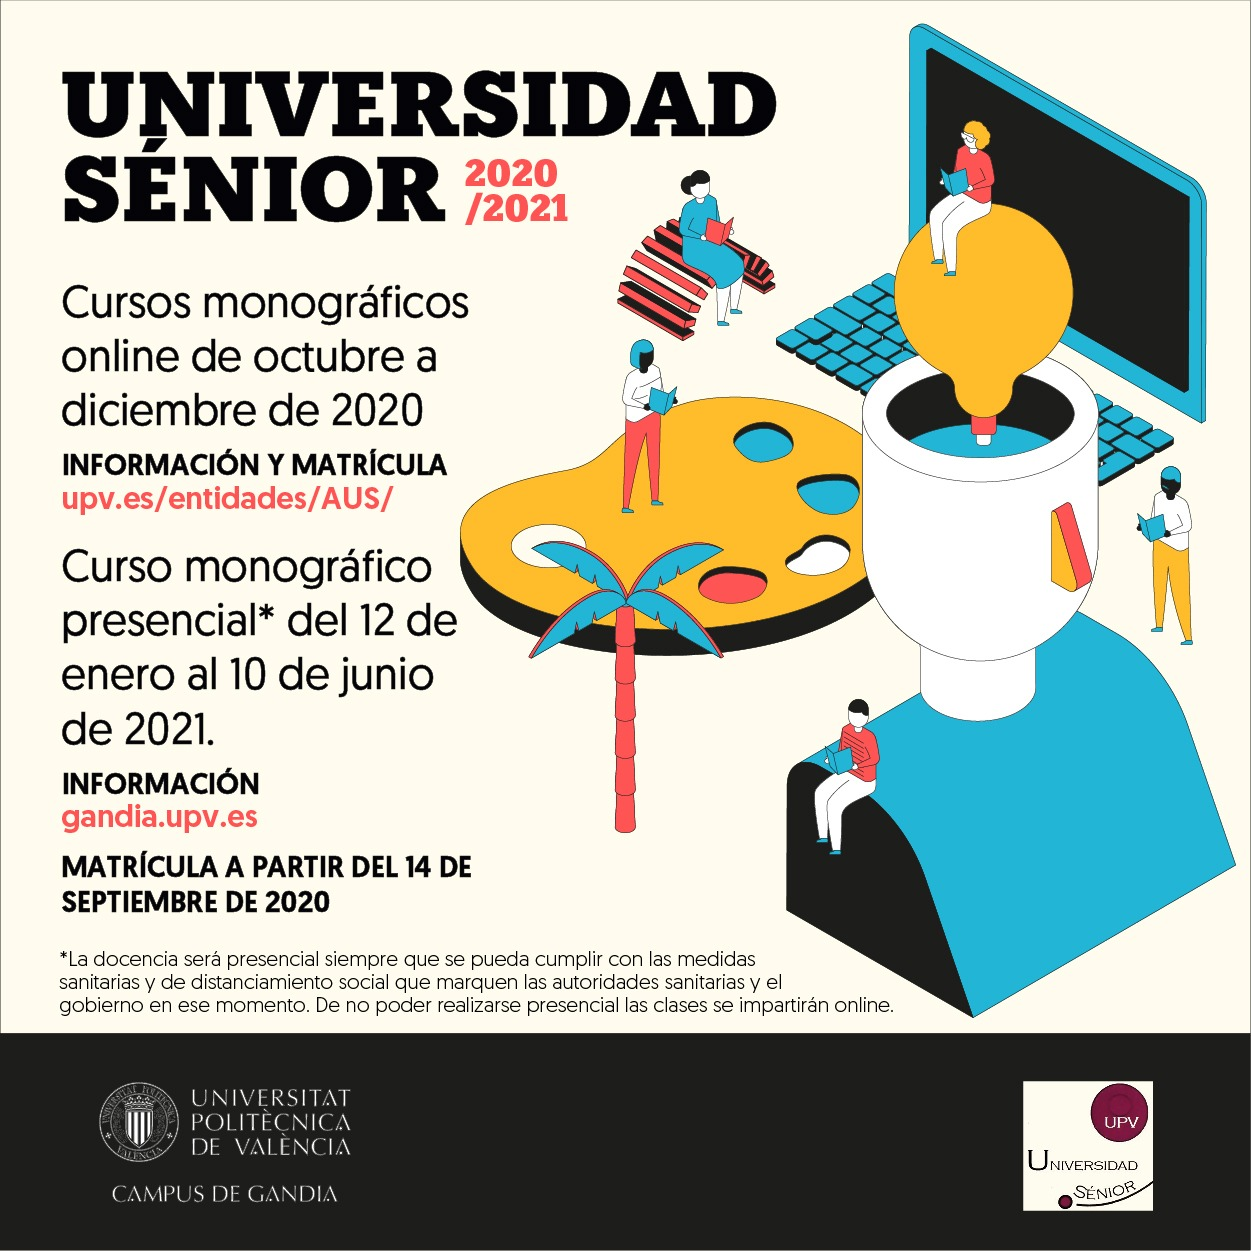 UPV US FOLLETO 2020 DIGITAL GANDIA